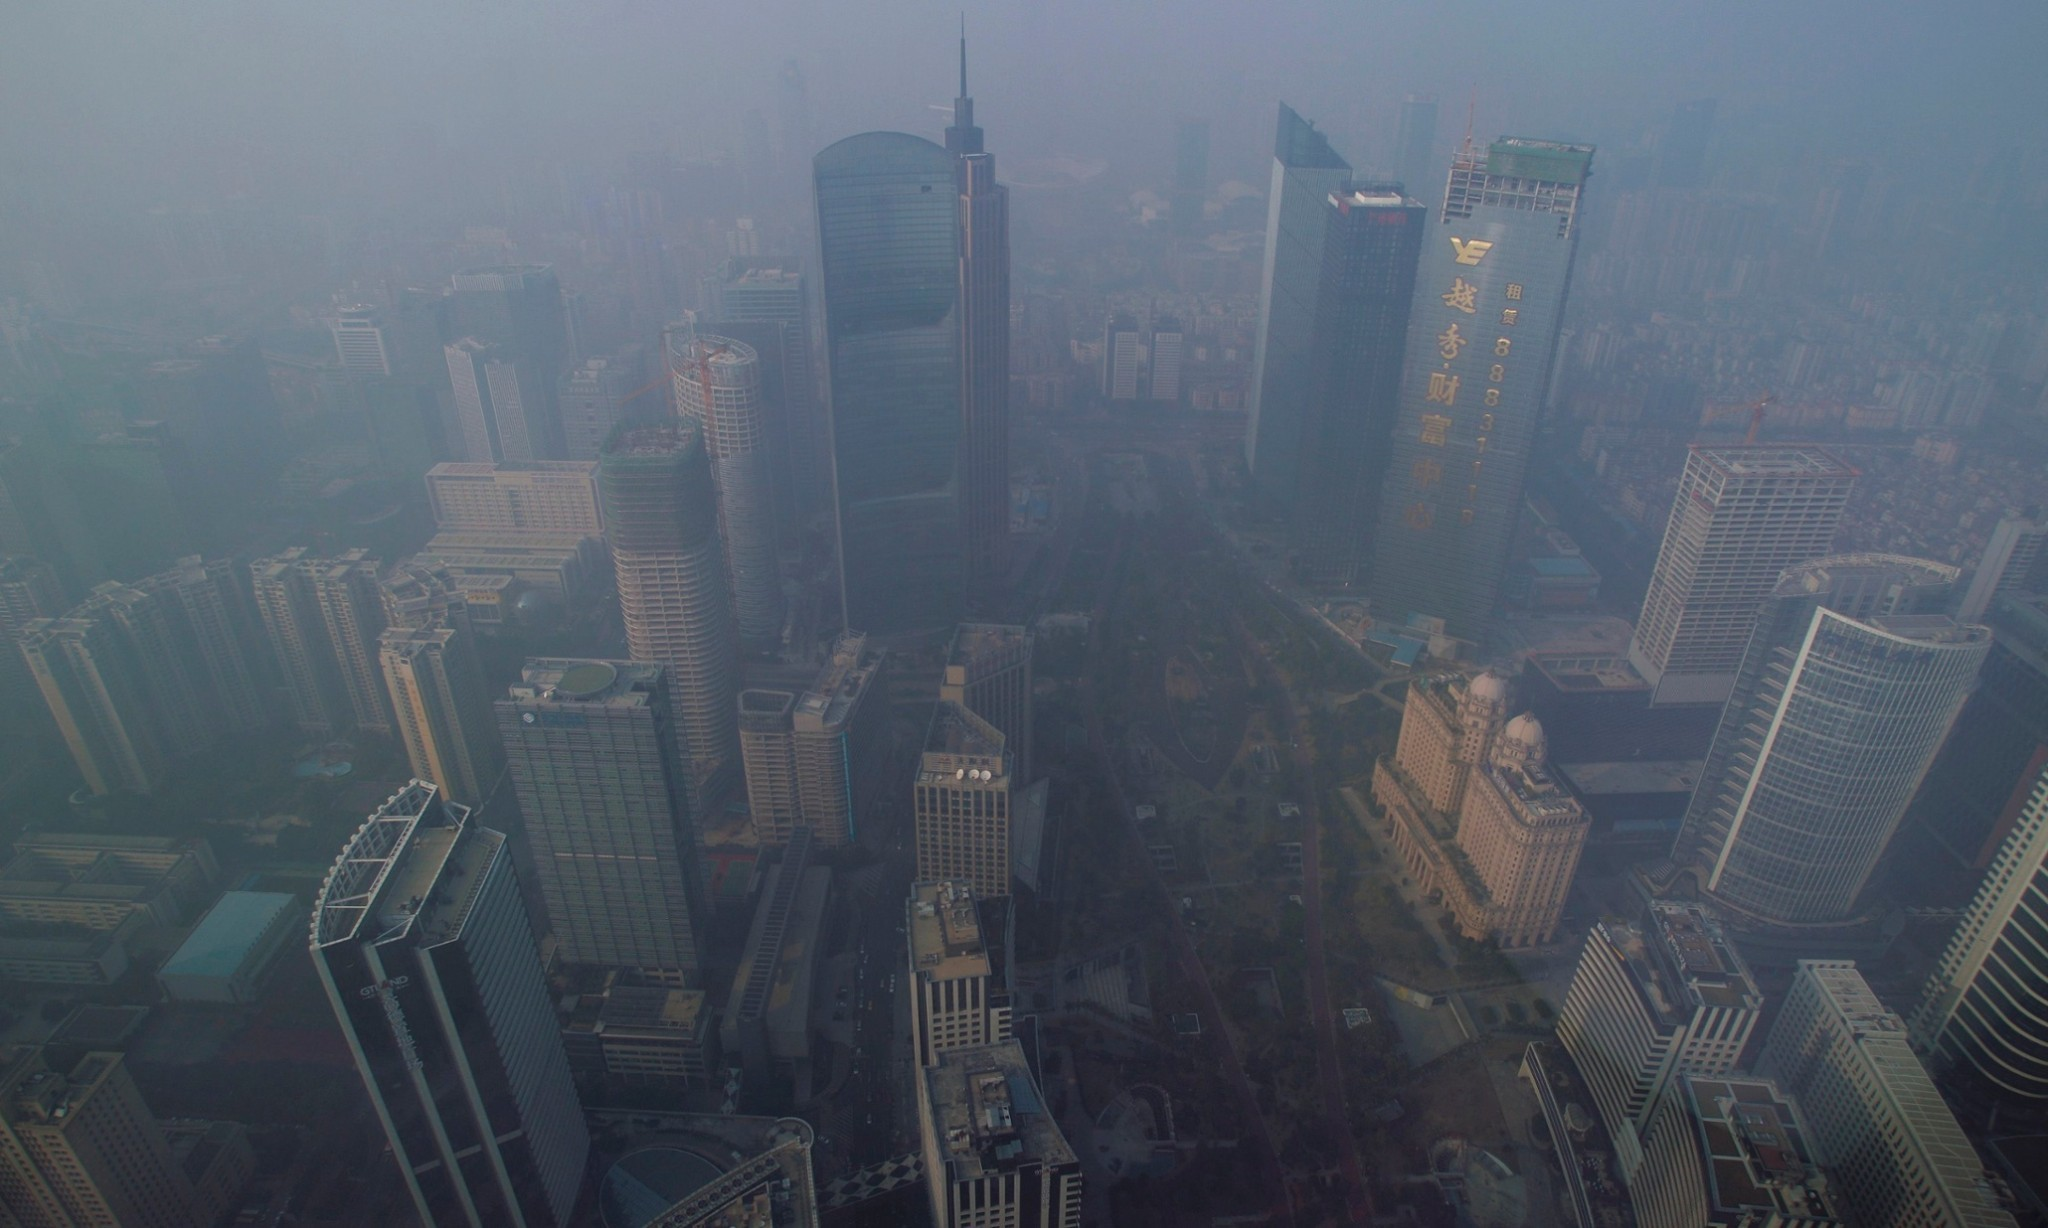 China's Pearl River Delta overtakes Tokyo as world's largest megacity